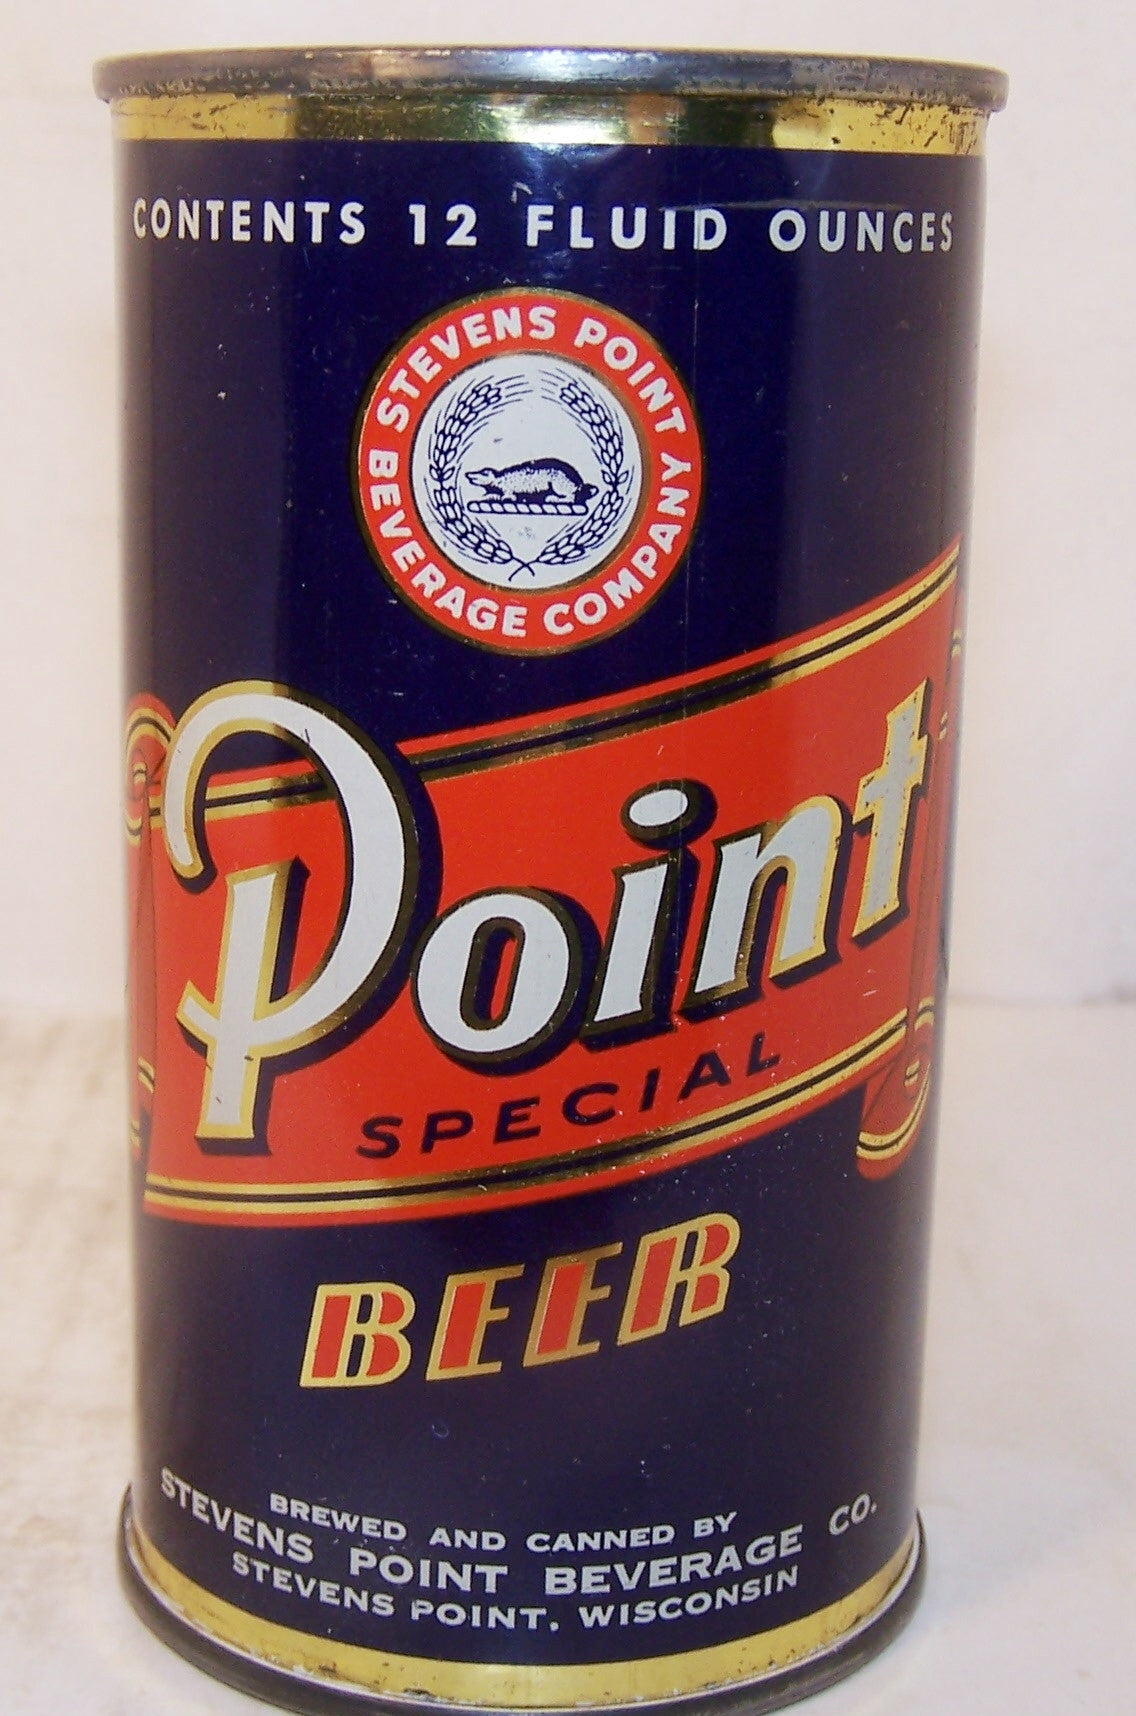 Point Special Beer usbc 116-17 Grade 1/1- Traded on 2/22/15